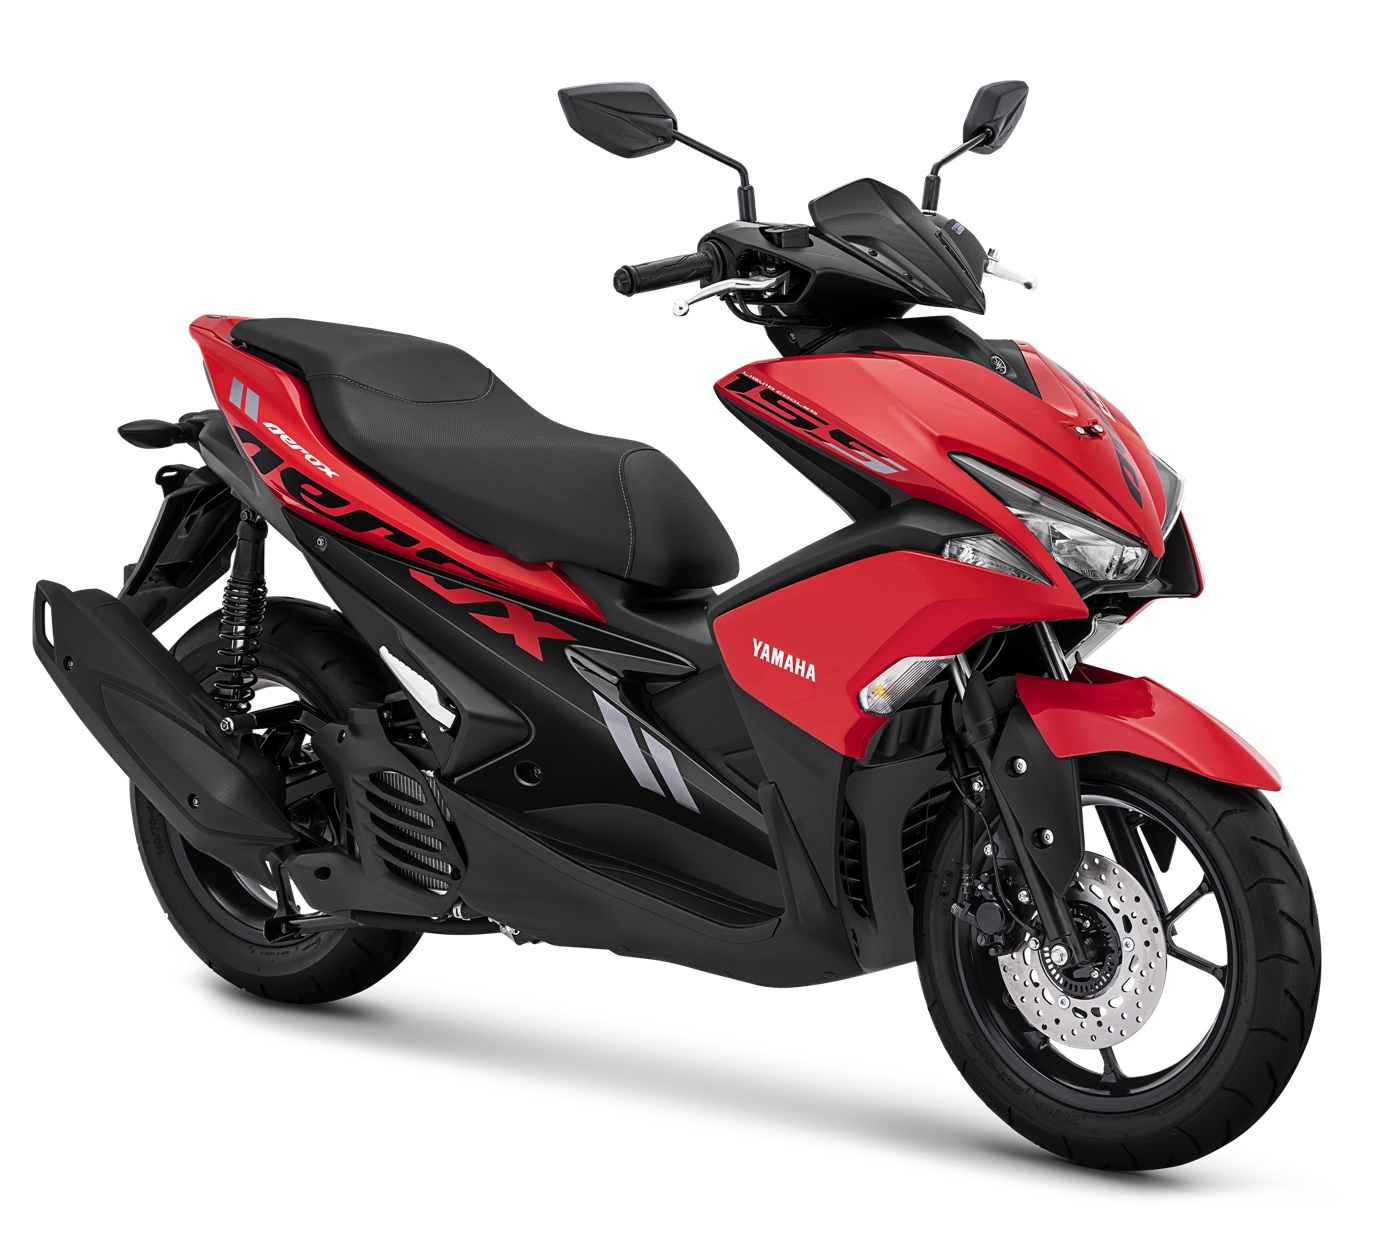 2019 Yamaha Aerox 155 VVA STD Warna Merah red